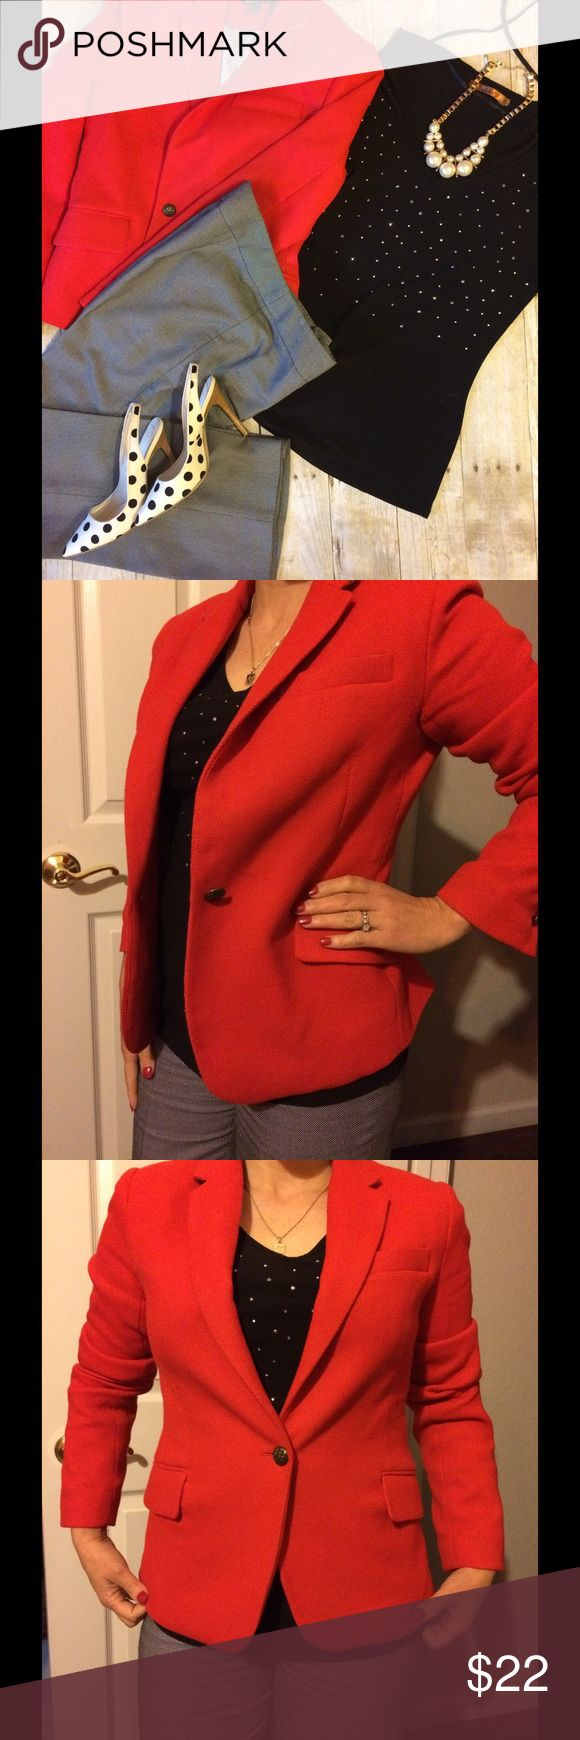 British Khaki red blazer Very sophisticated red blazer. Wear it casually or pair it with skirt or dress. Worn twice in great condition. 64% polyester 34% rayon,2% spandex. 3 bottoms on each sleeve Jackets & Coats Blazers